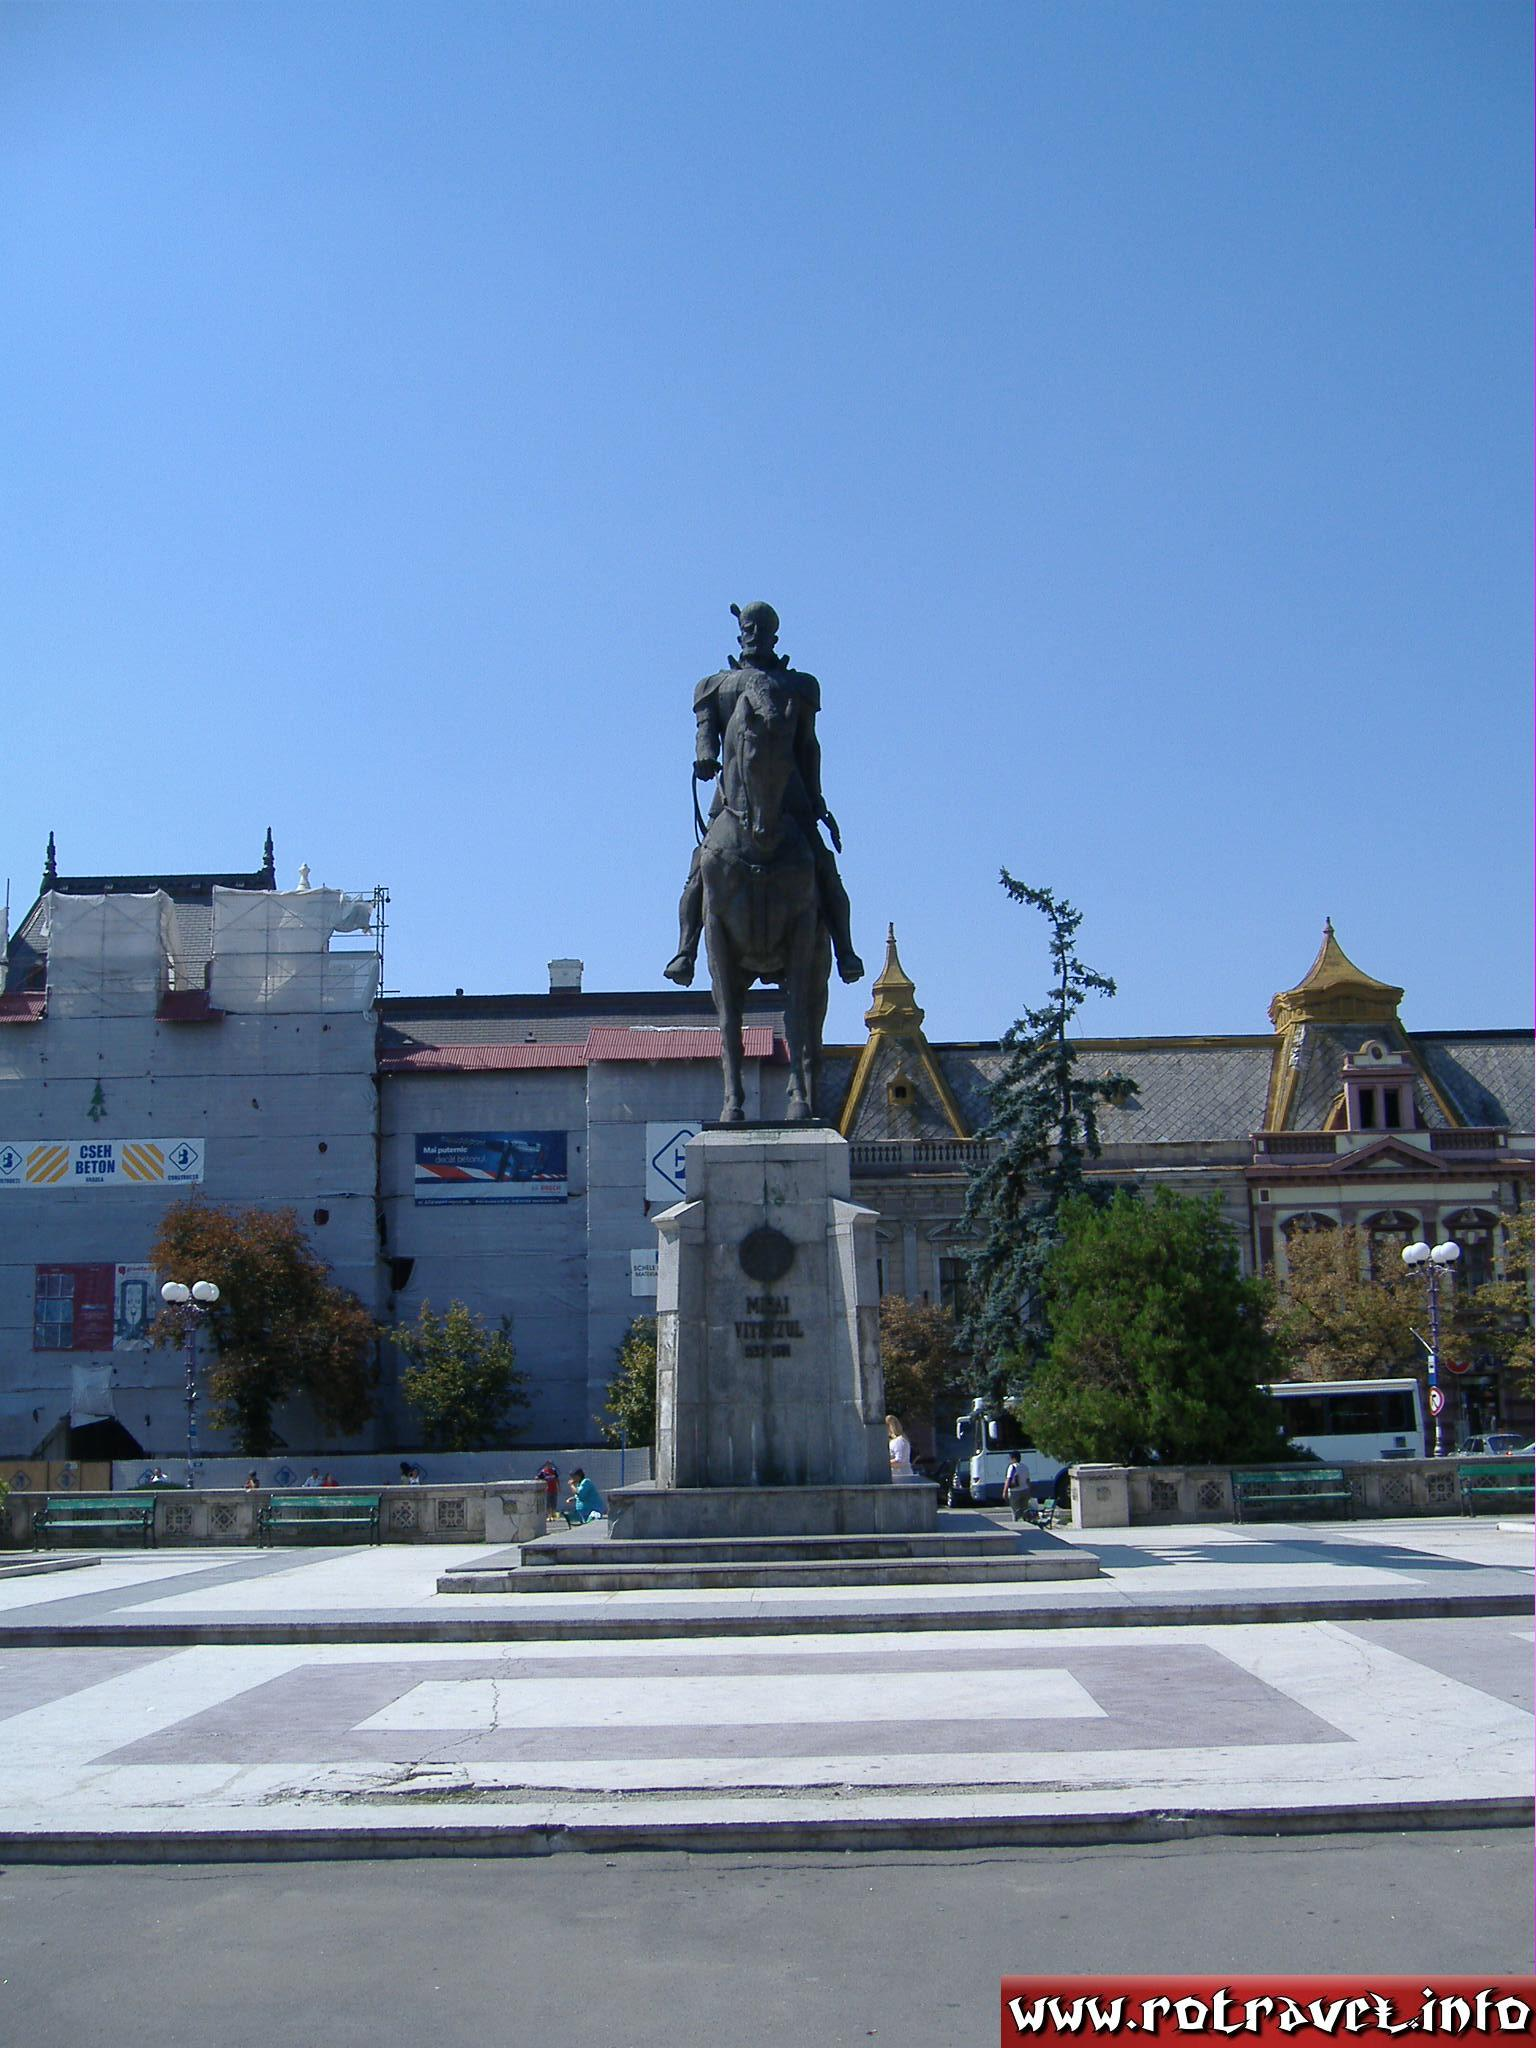 The statue of Mihai Viteazul (Michael the brave) in the center